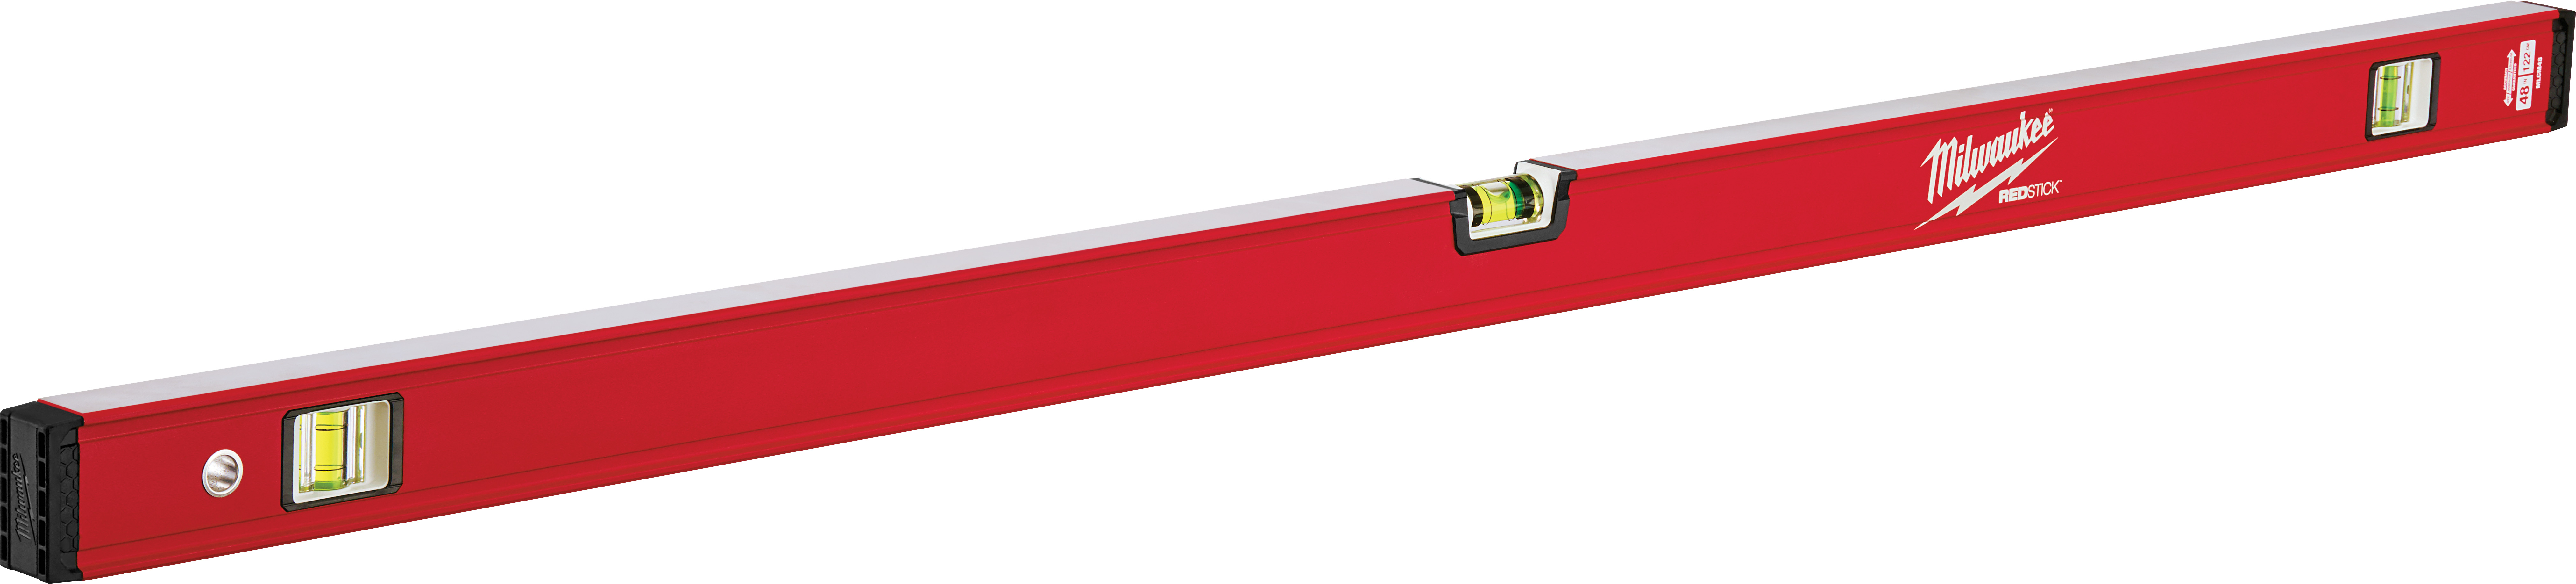 Milwaukee® REDSTICK™ MLCM48 Compact Box Level, 48 in L, 3 Vials, Aluminum, (1) Level, (2) Plumb Vial Position, 0.0005 in/in Accuracy